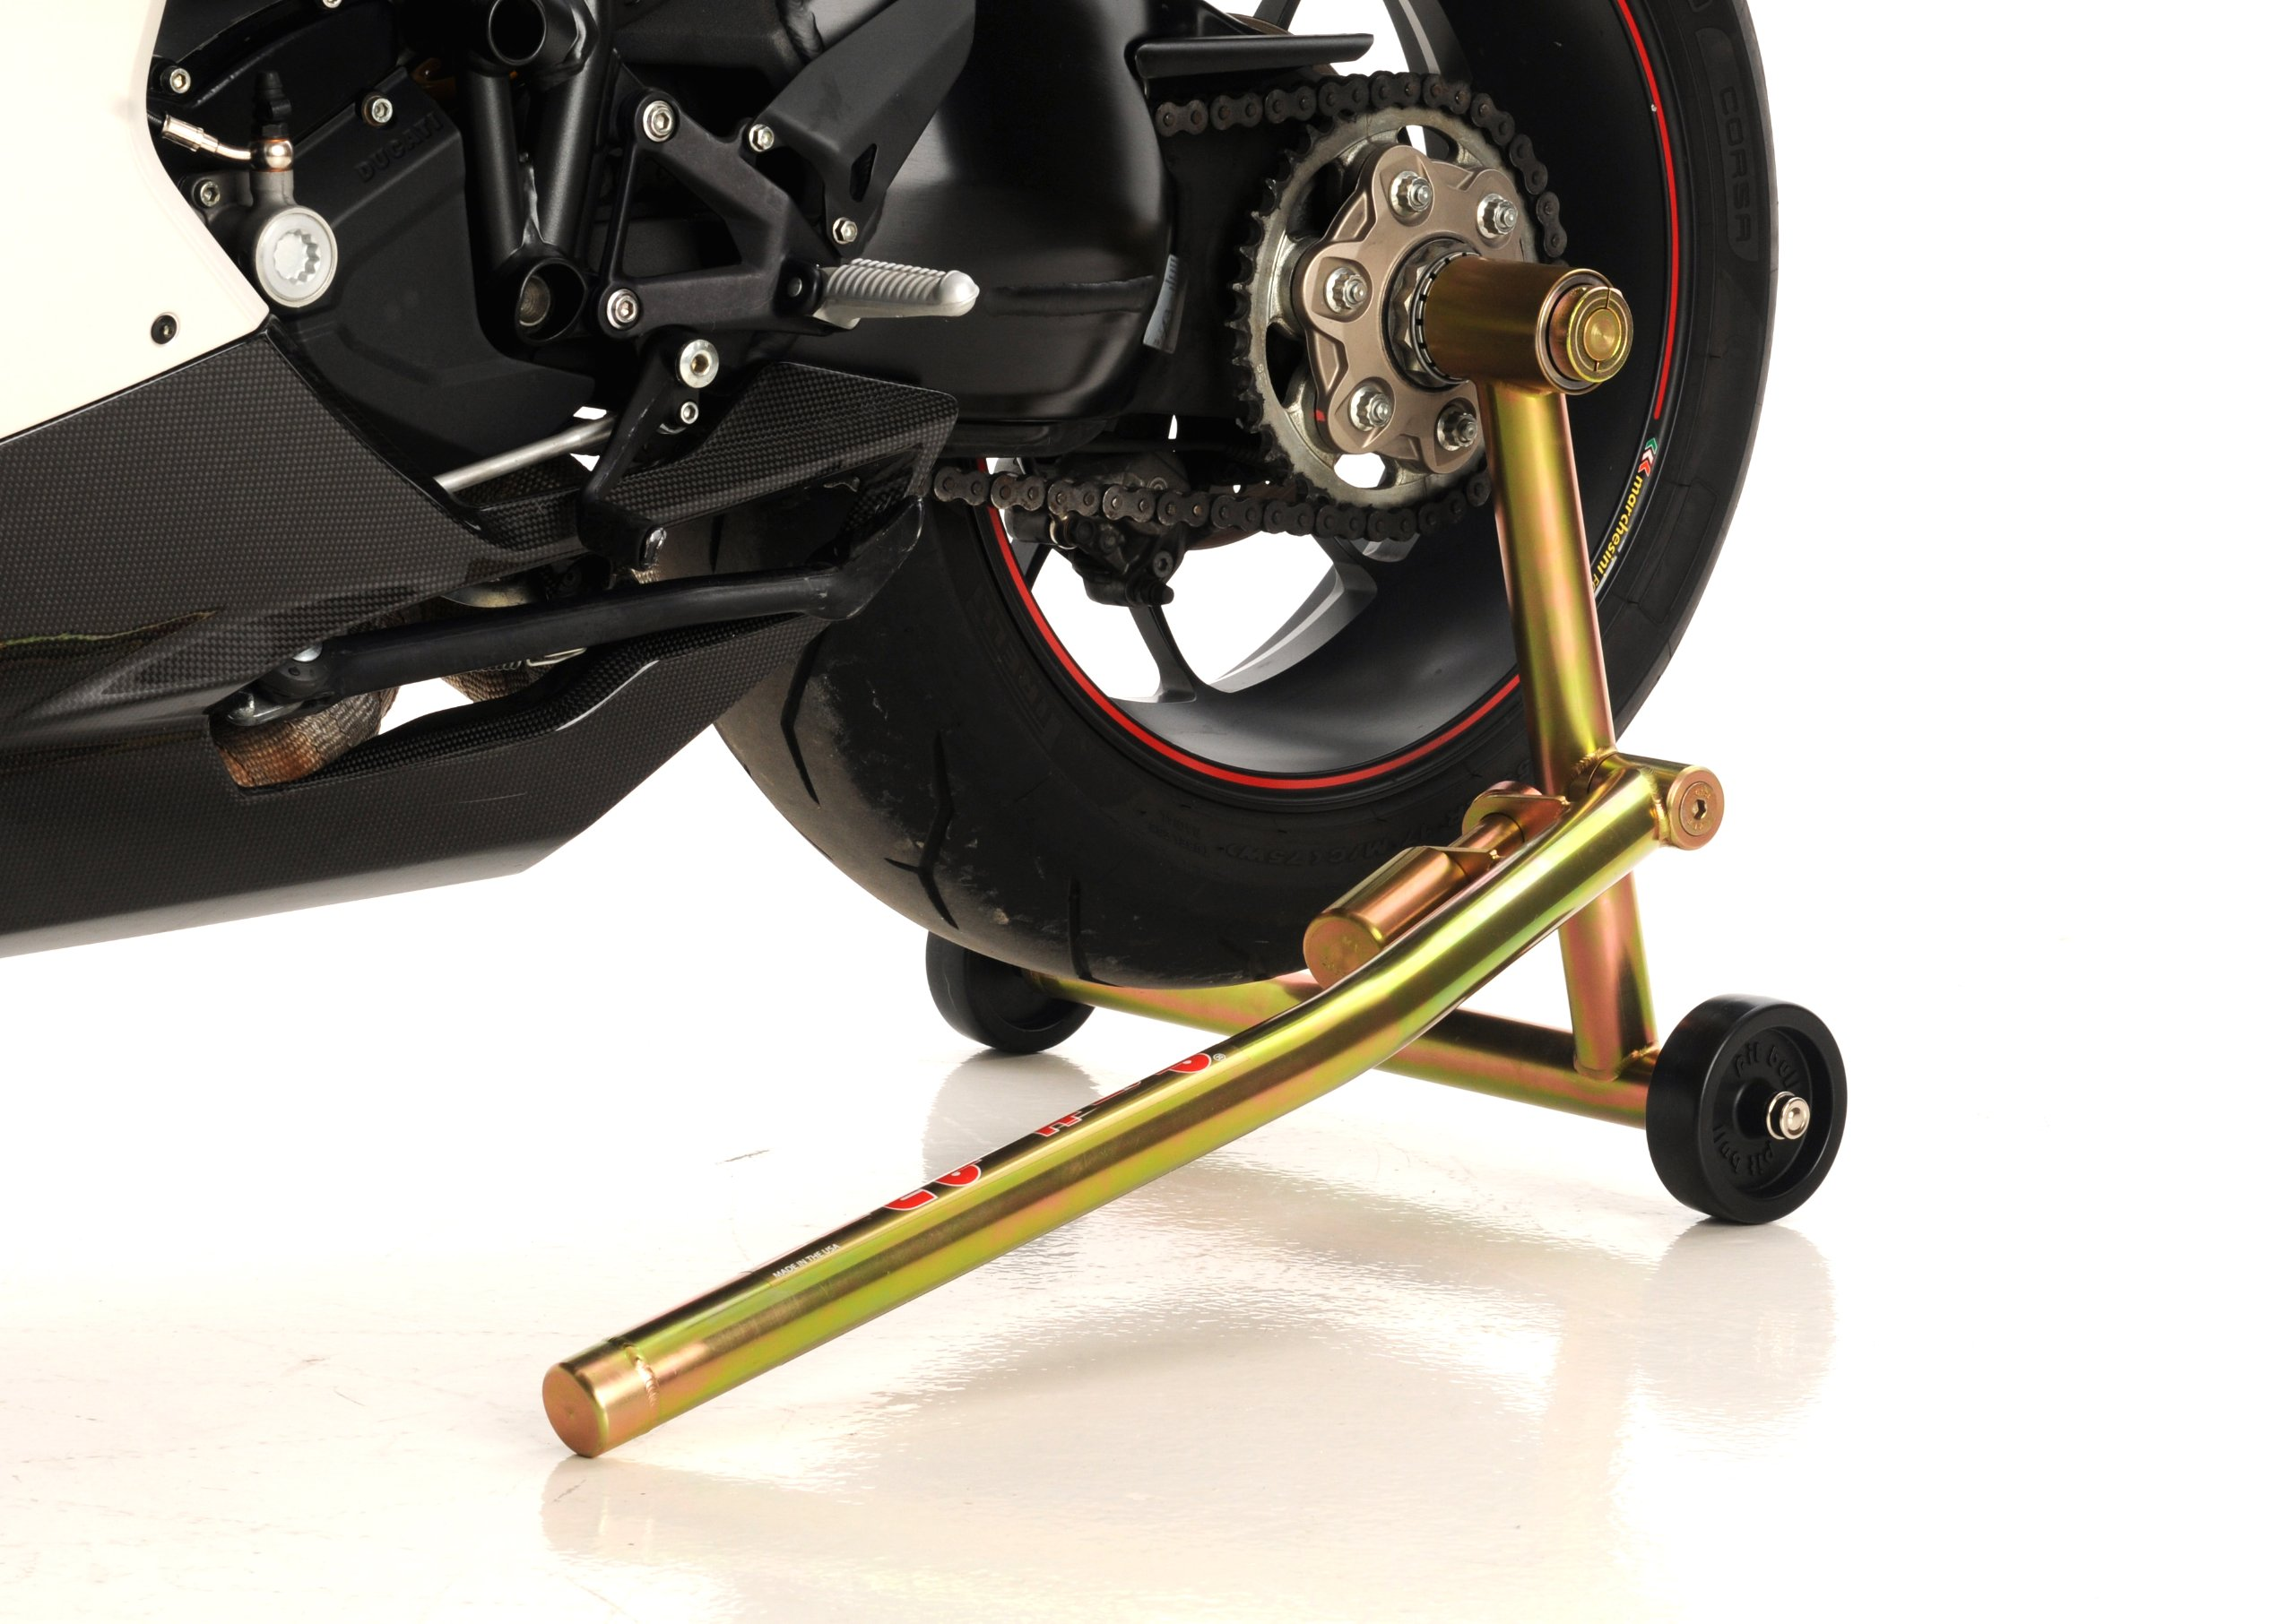 Pit Bull Hybrid One Armed Rear Stand, Ducati Small Hub (w/ pins for both sides of bike) for 848, 916, 996, 998, Hypermotard, Hyperstrada, Monster 796, Monster 1100, S4RS